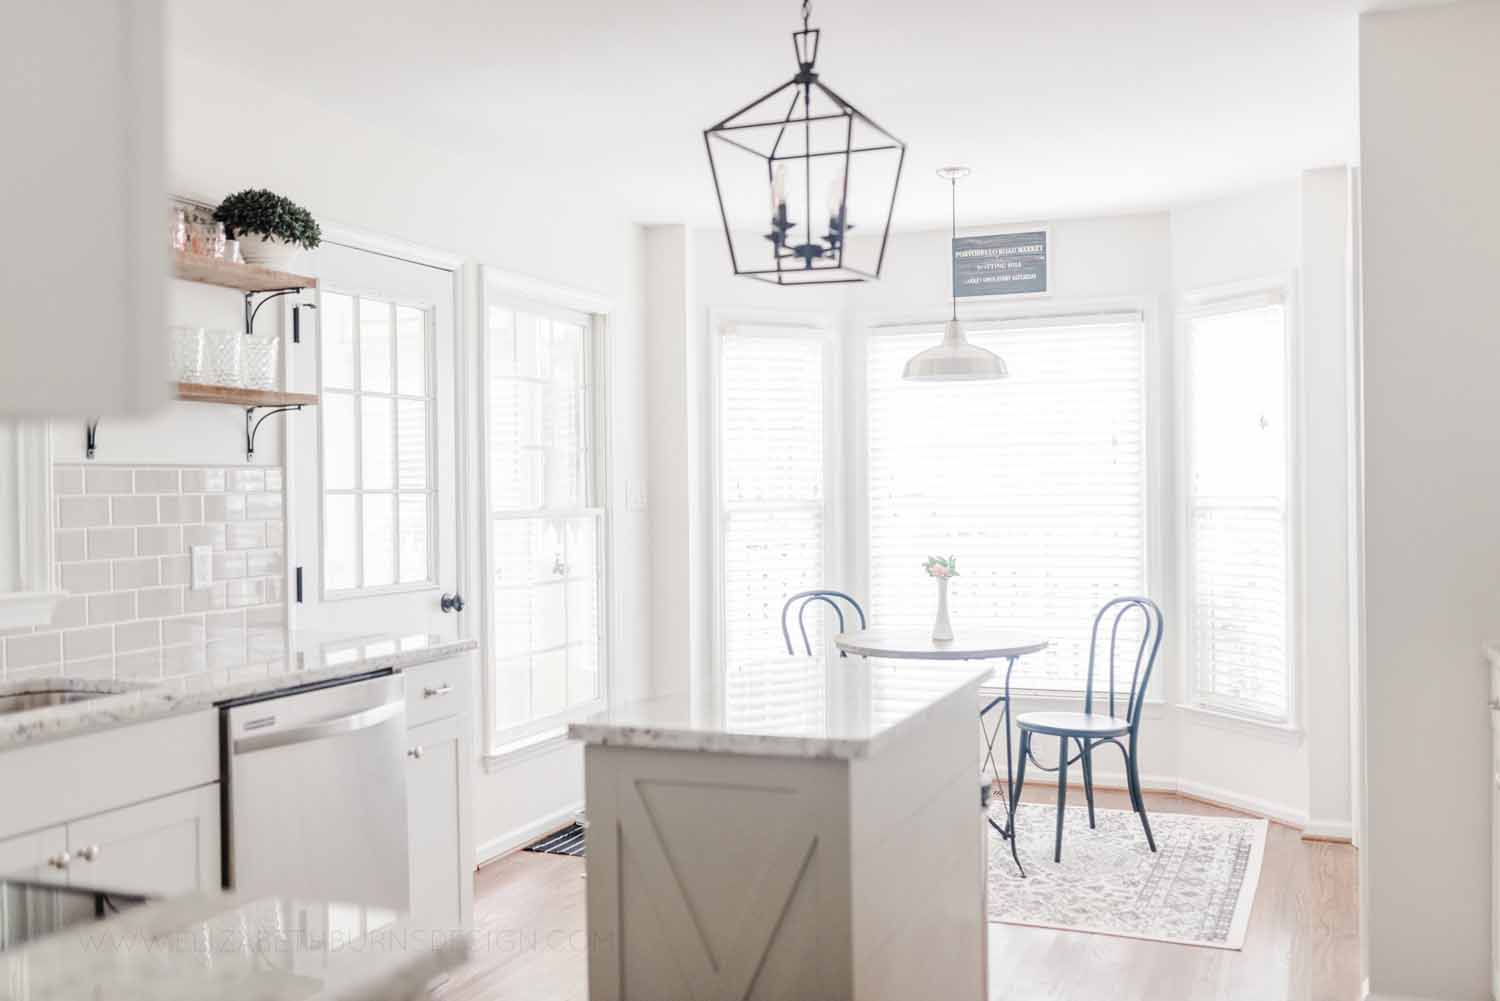 Elizabeth Burns Design Raleigh Interior Designer 1990s house remodel before and after Benjamin Moore Classic Gray 1548 Arcadia White Shaker Cabinets Gray Subway Tile Backsplash (2).jpg